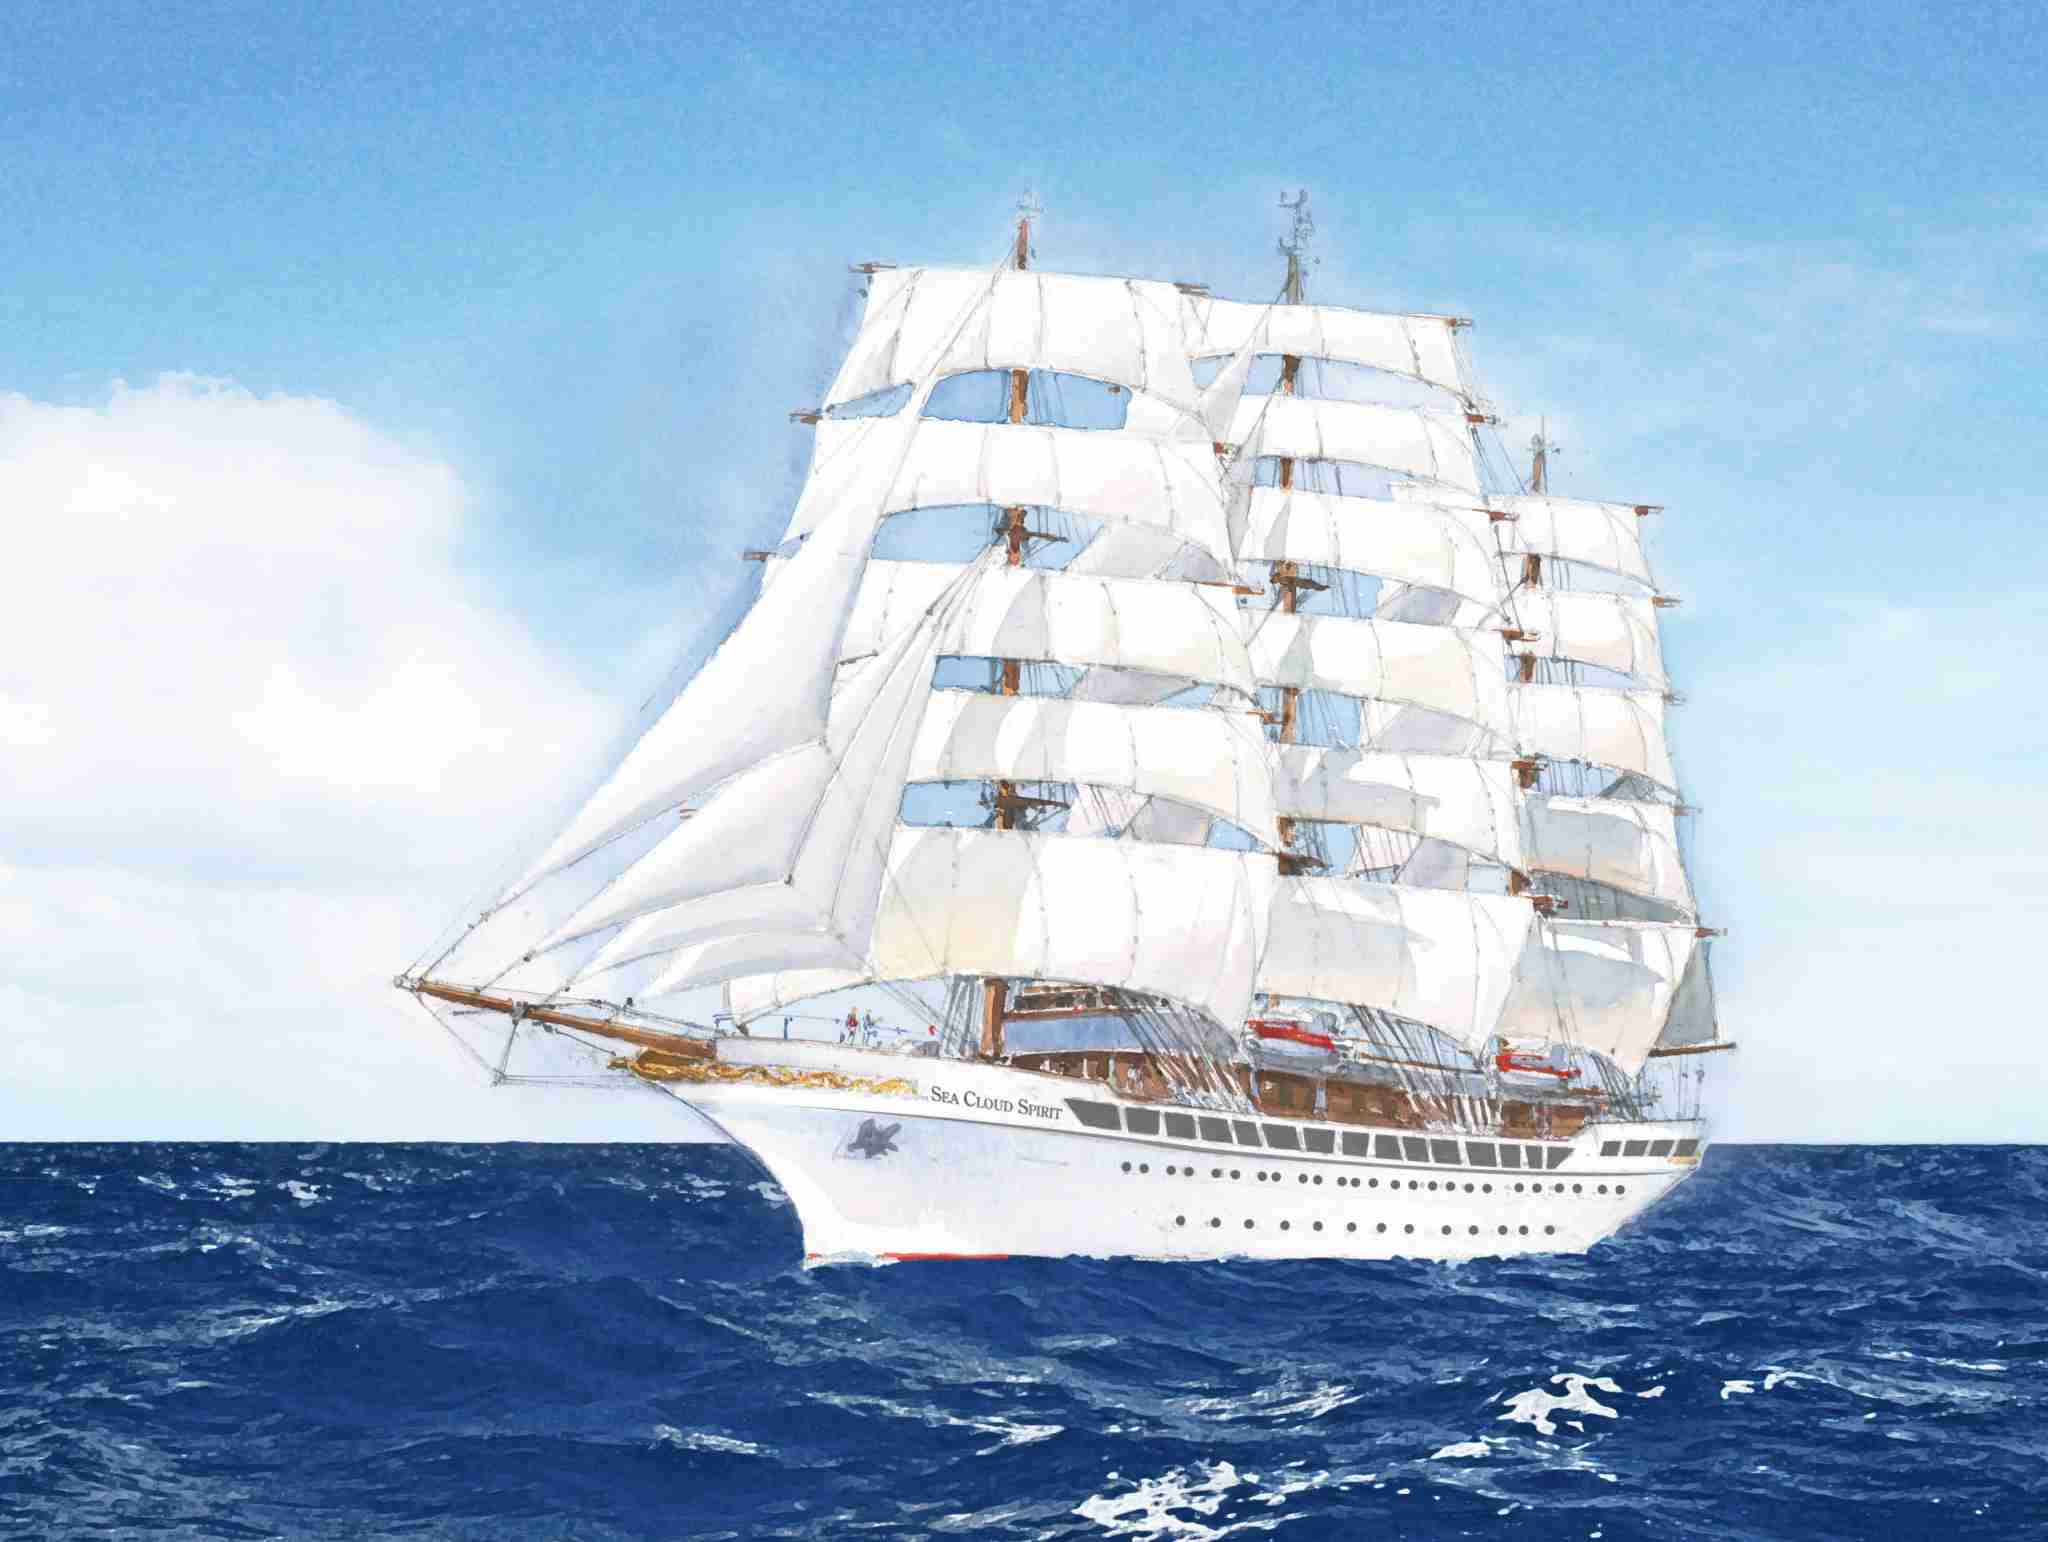 The 136-passenger Sea Cloud Spirit, shown here in an artist